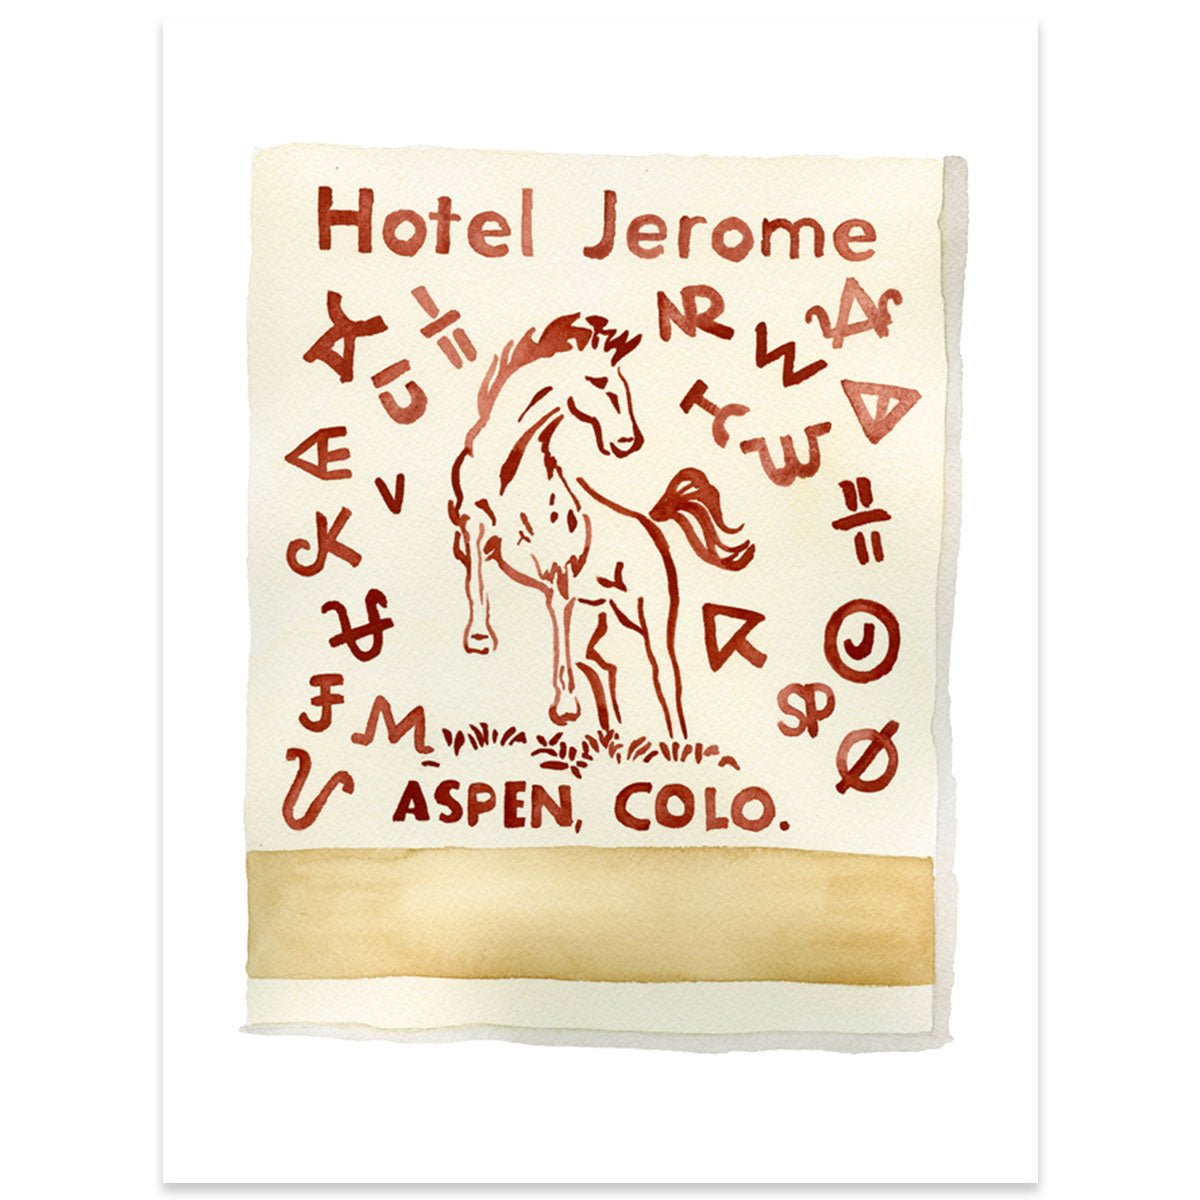 Furbish Studio - Hotel Jerome Original Matchbook Watercolor Print in aspen, colorado